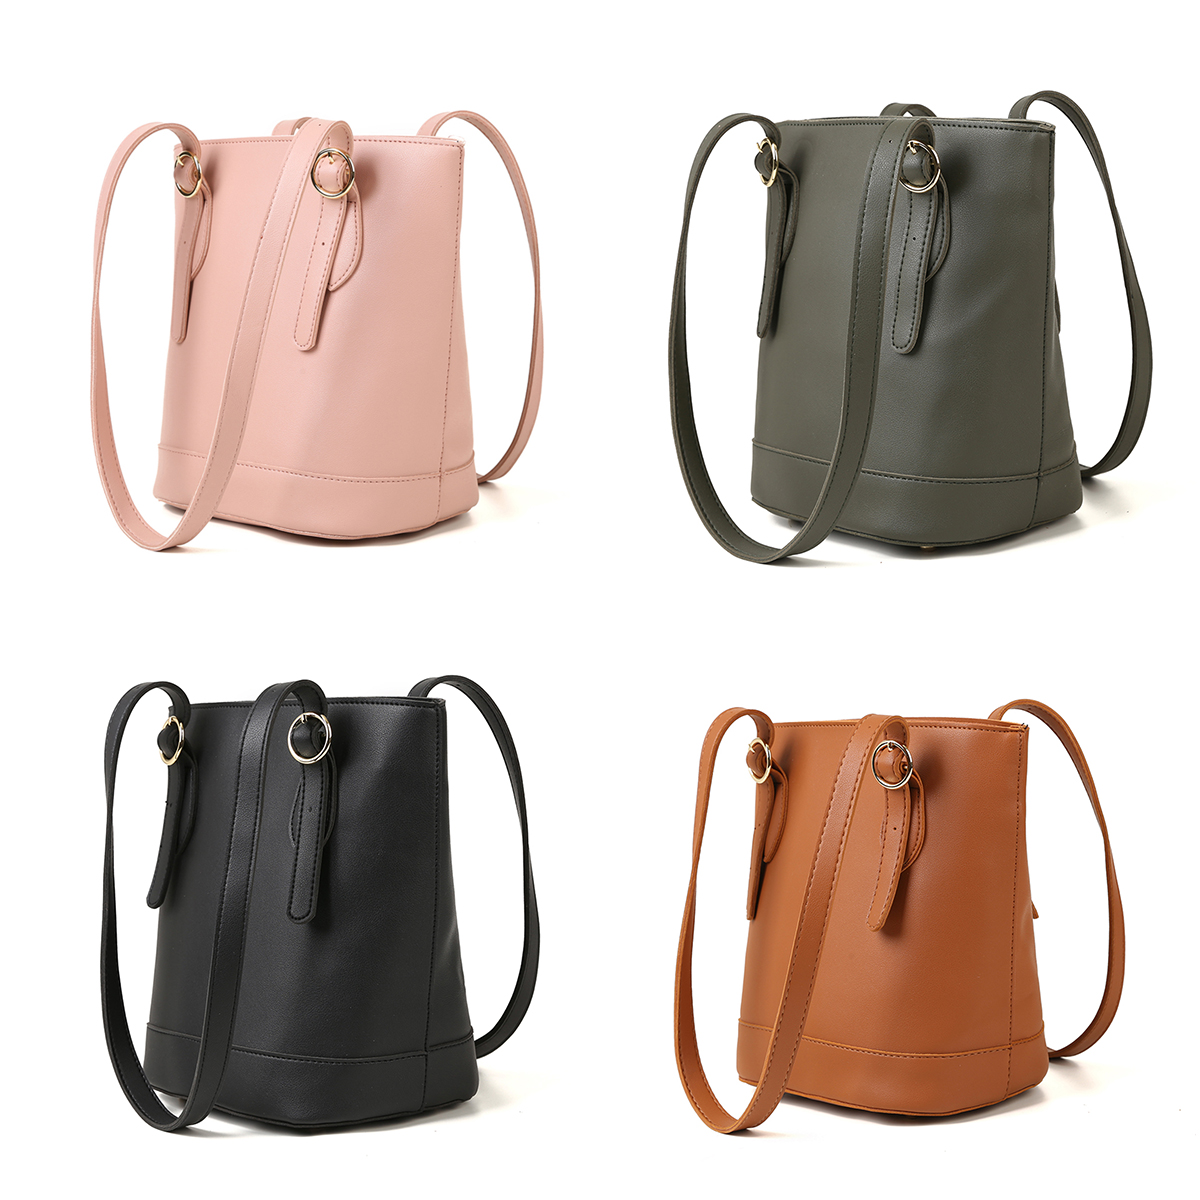 Women Simple Fashion Leather Handbags Big Women Bag High Quality Casual Female Bags Trunk Tote Shoulder Bag Ladies Large